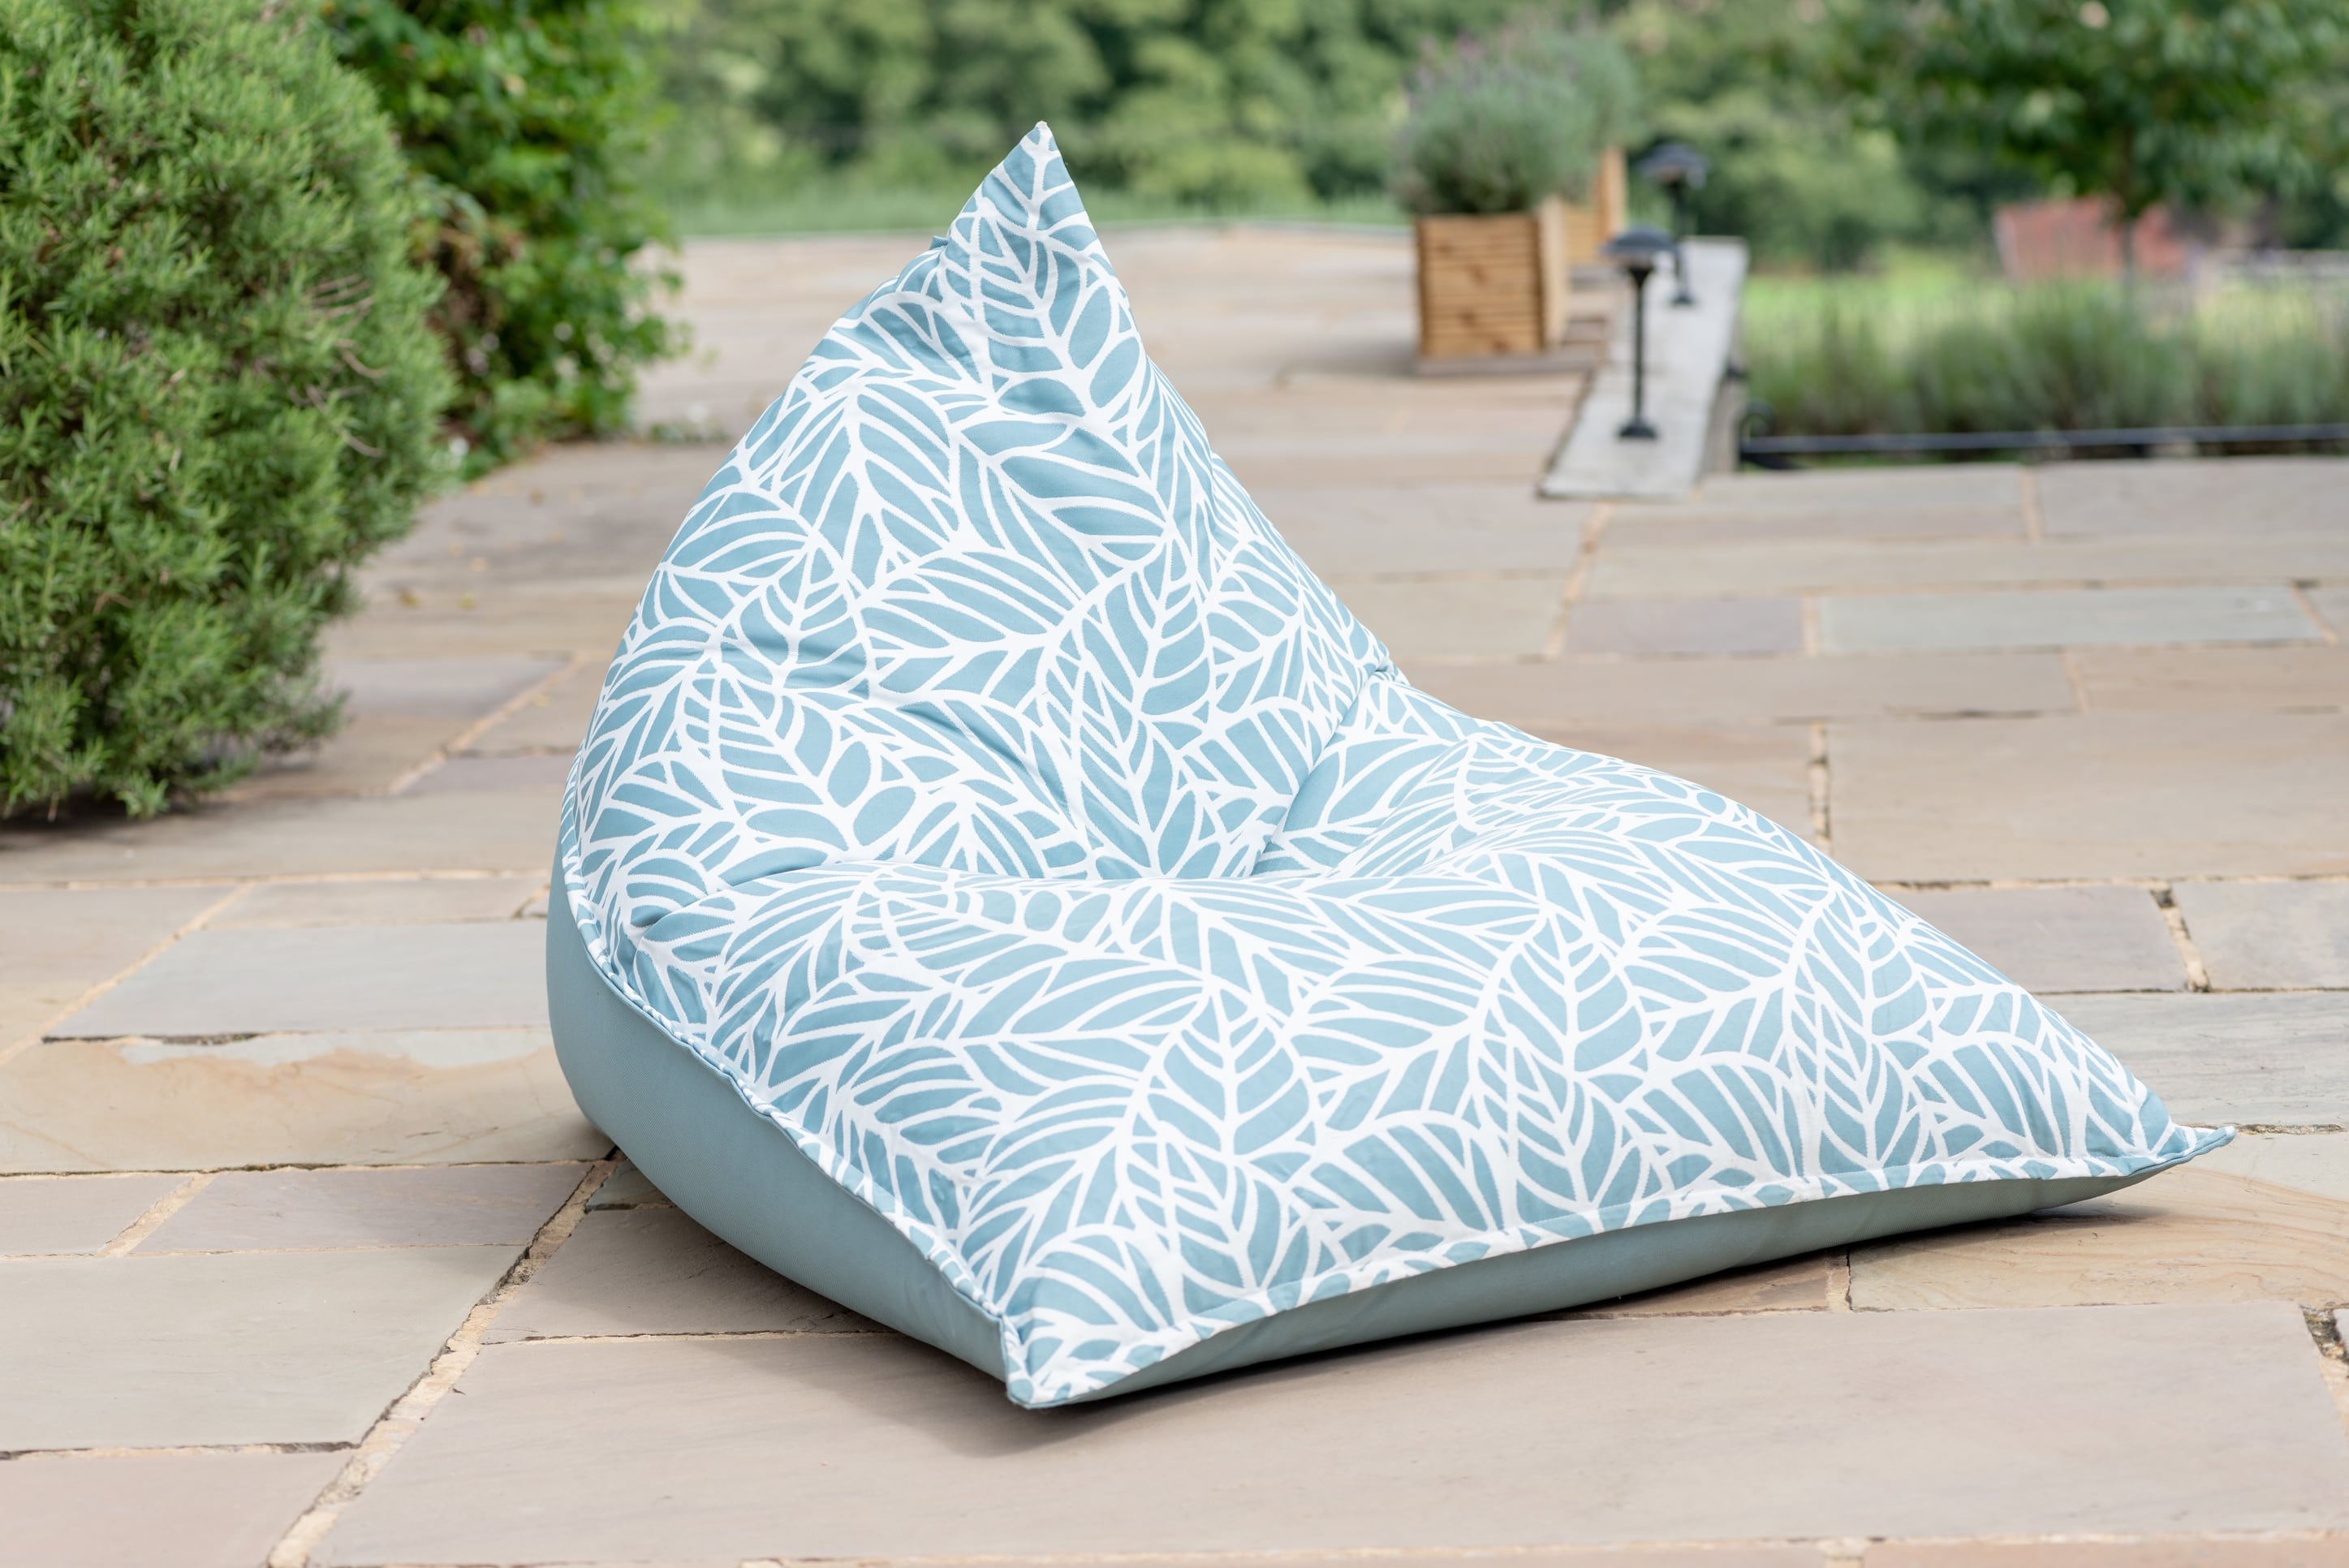 Armadillo Sun bean bag lounger in ocean blue and white palm pattern